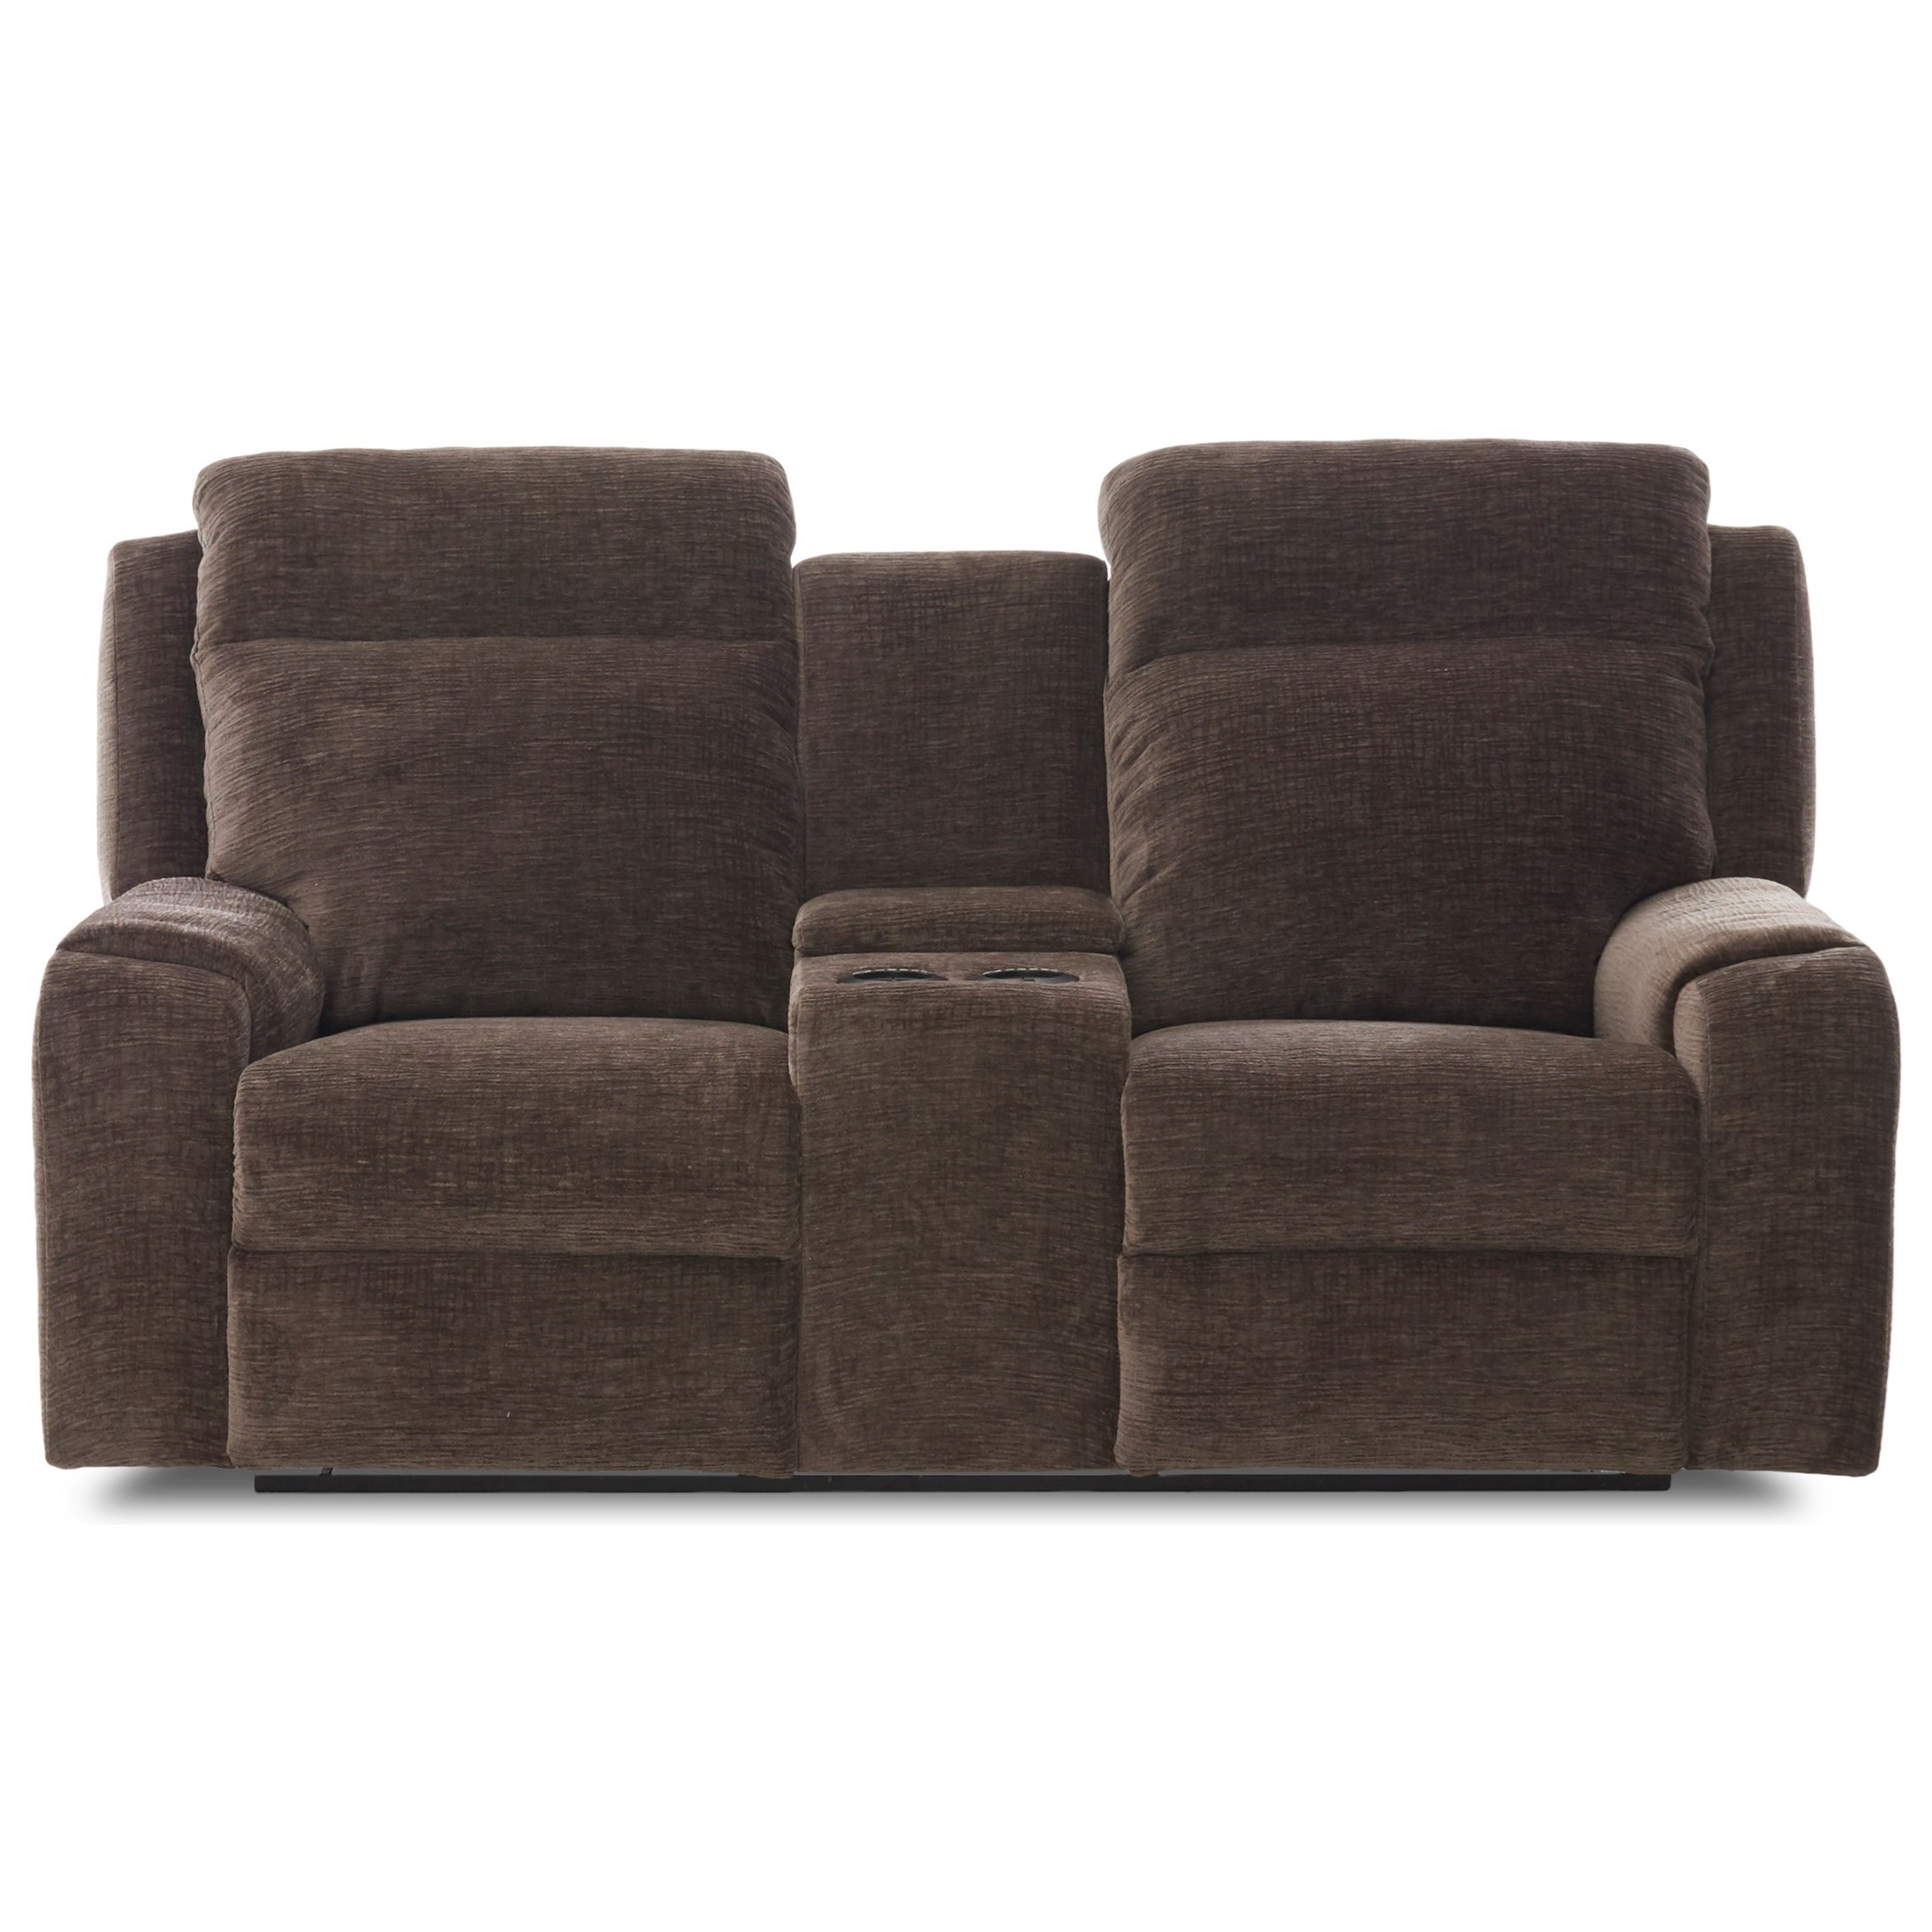 Merlin Power Reclining Love w/ Console & Pwr Head by Klaussner at Lapeer Furniture & Mattress Center